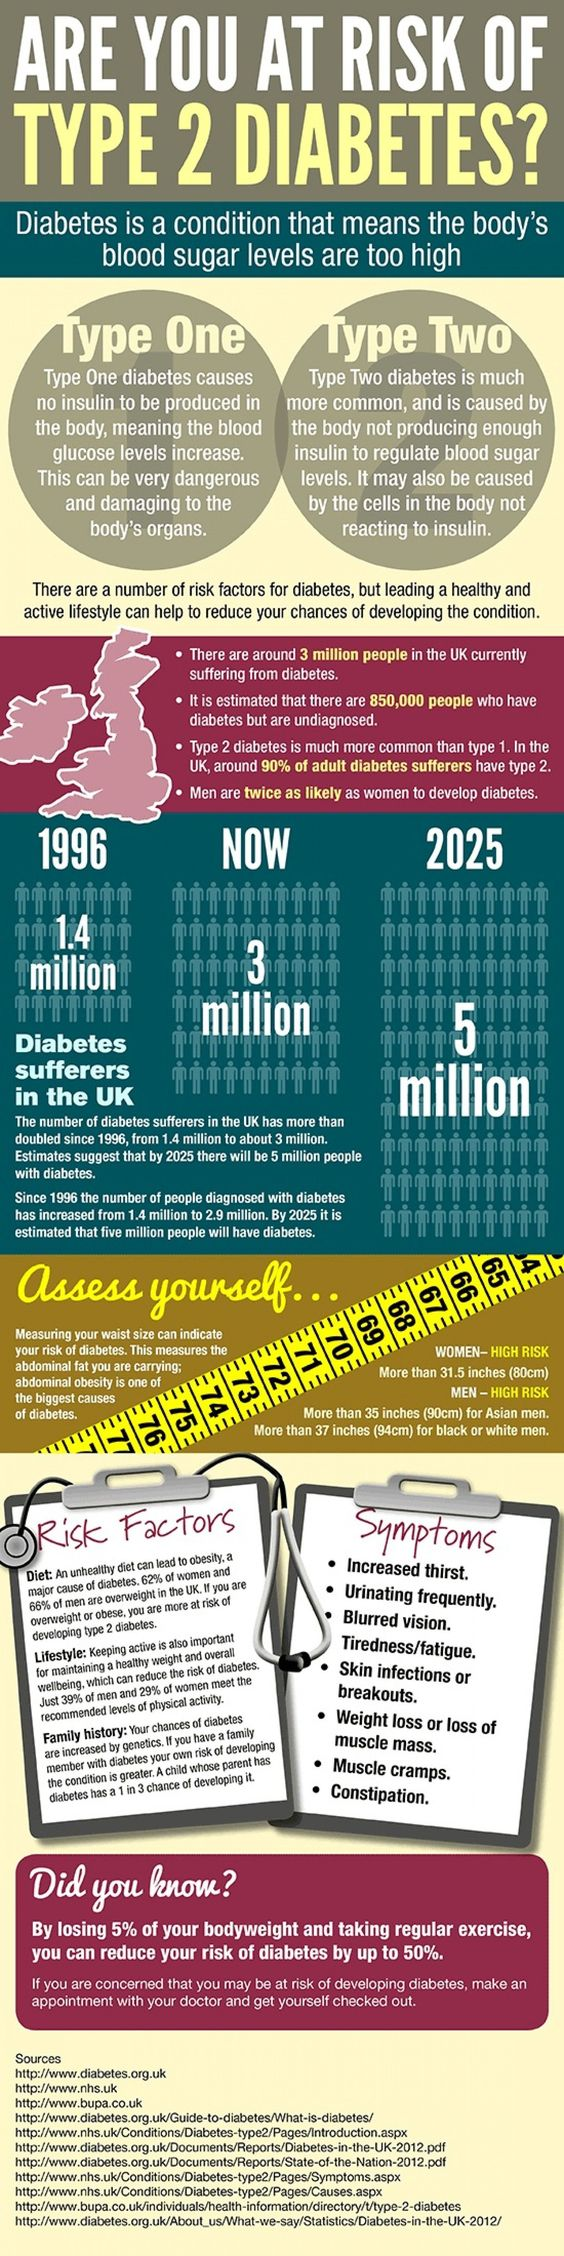 Are you at risk of type 2 diabetes? (infographic) #type2diabetes #wegohealth: